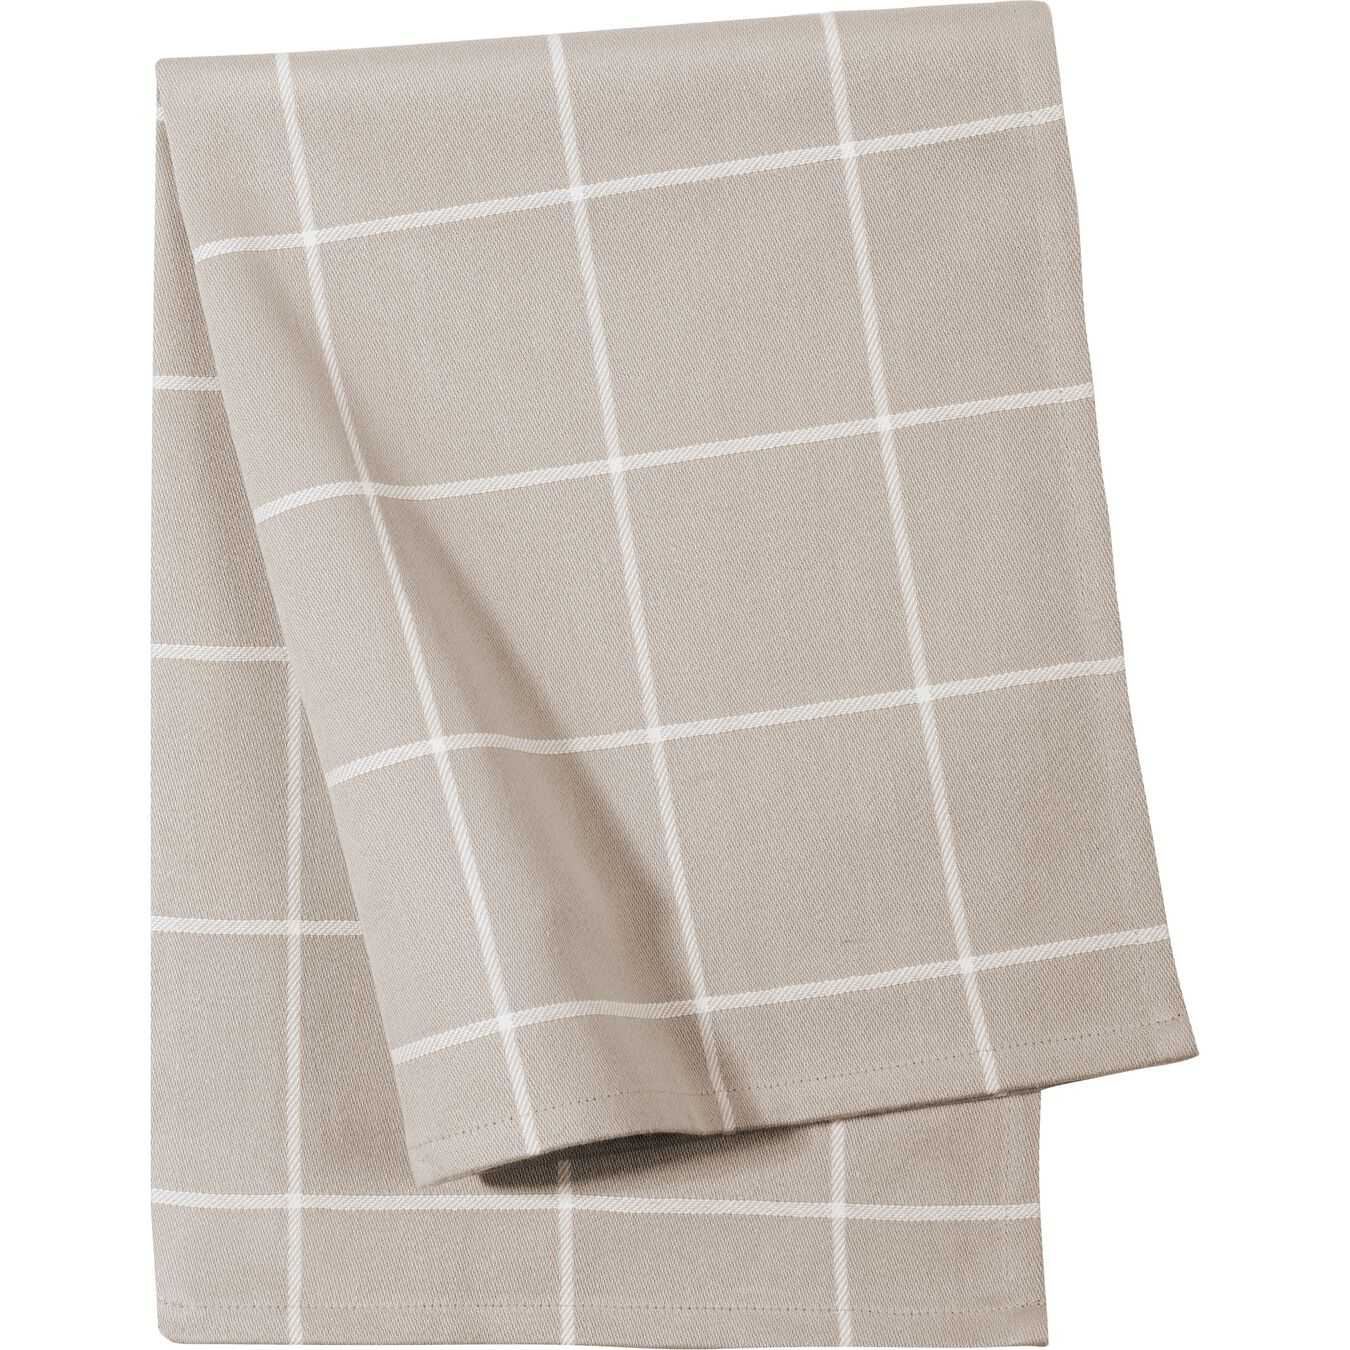 2 Piece 2 Piece Kitchen towel set checkered, taupe,,large 7